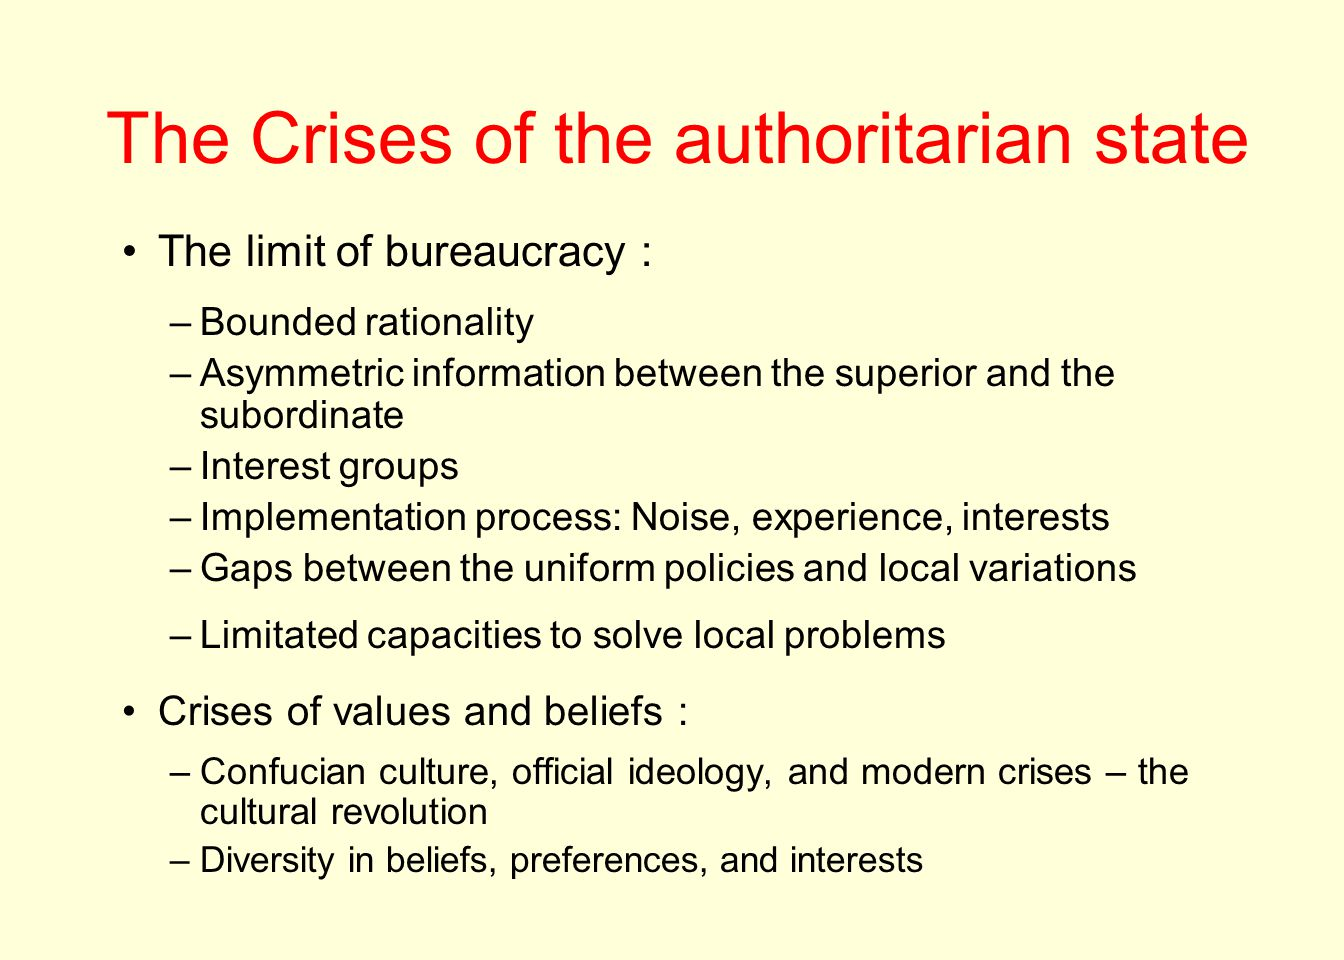 The Crises of the authoritarian state